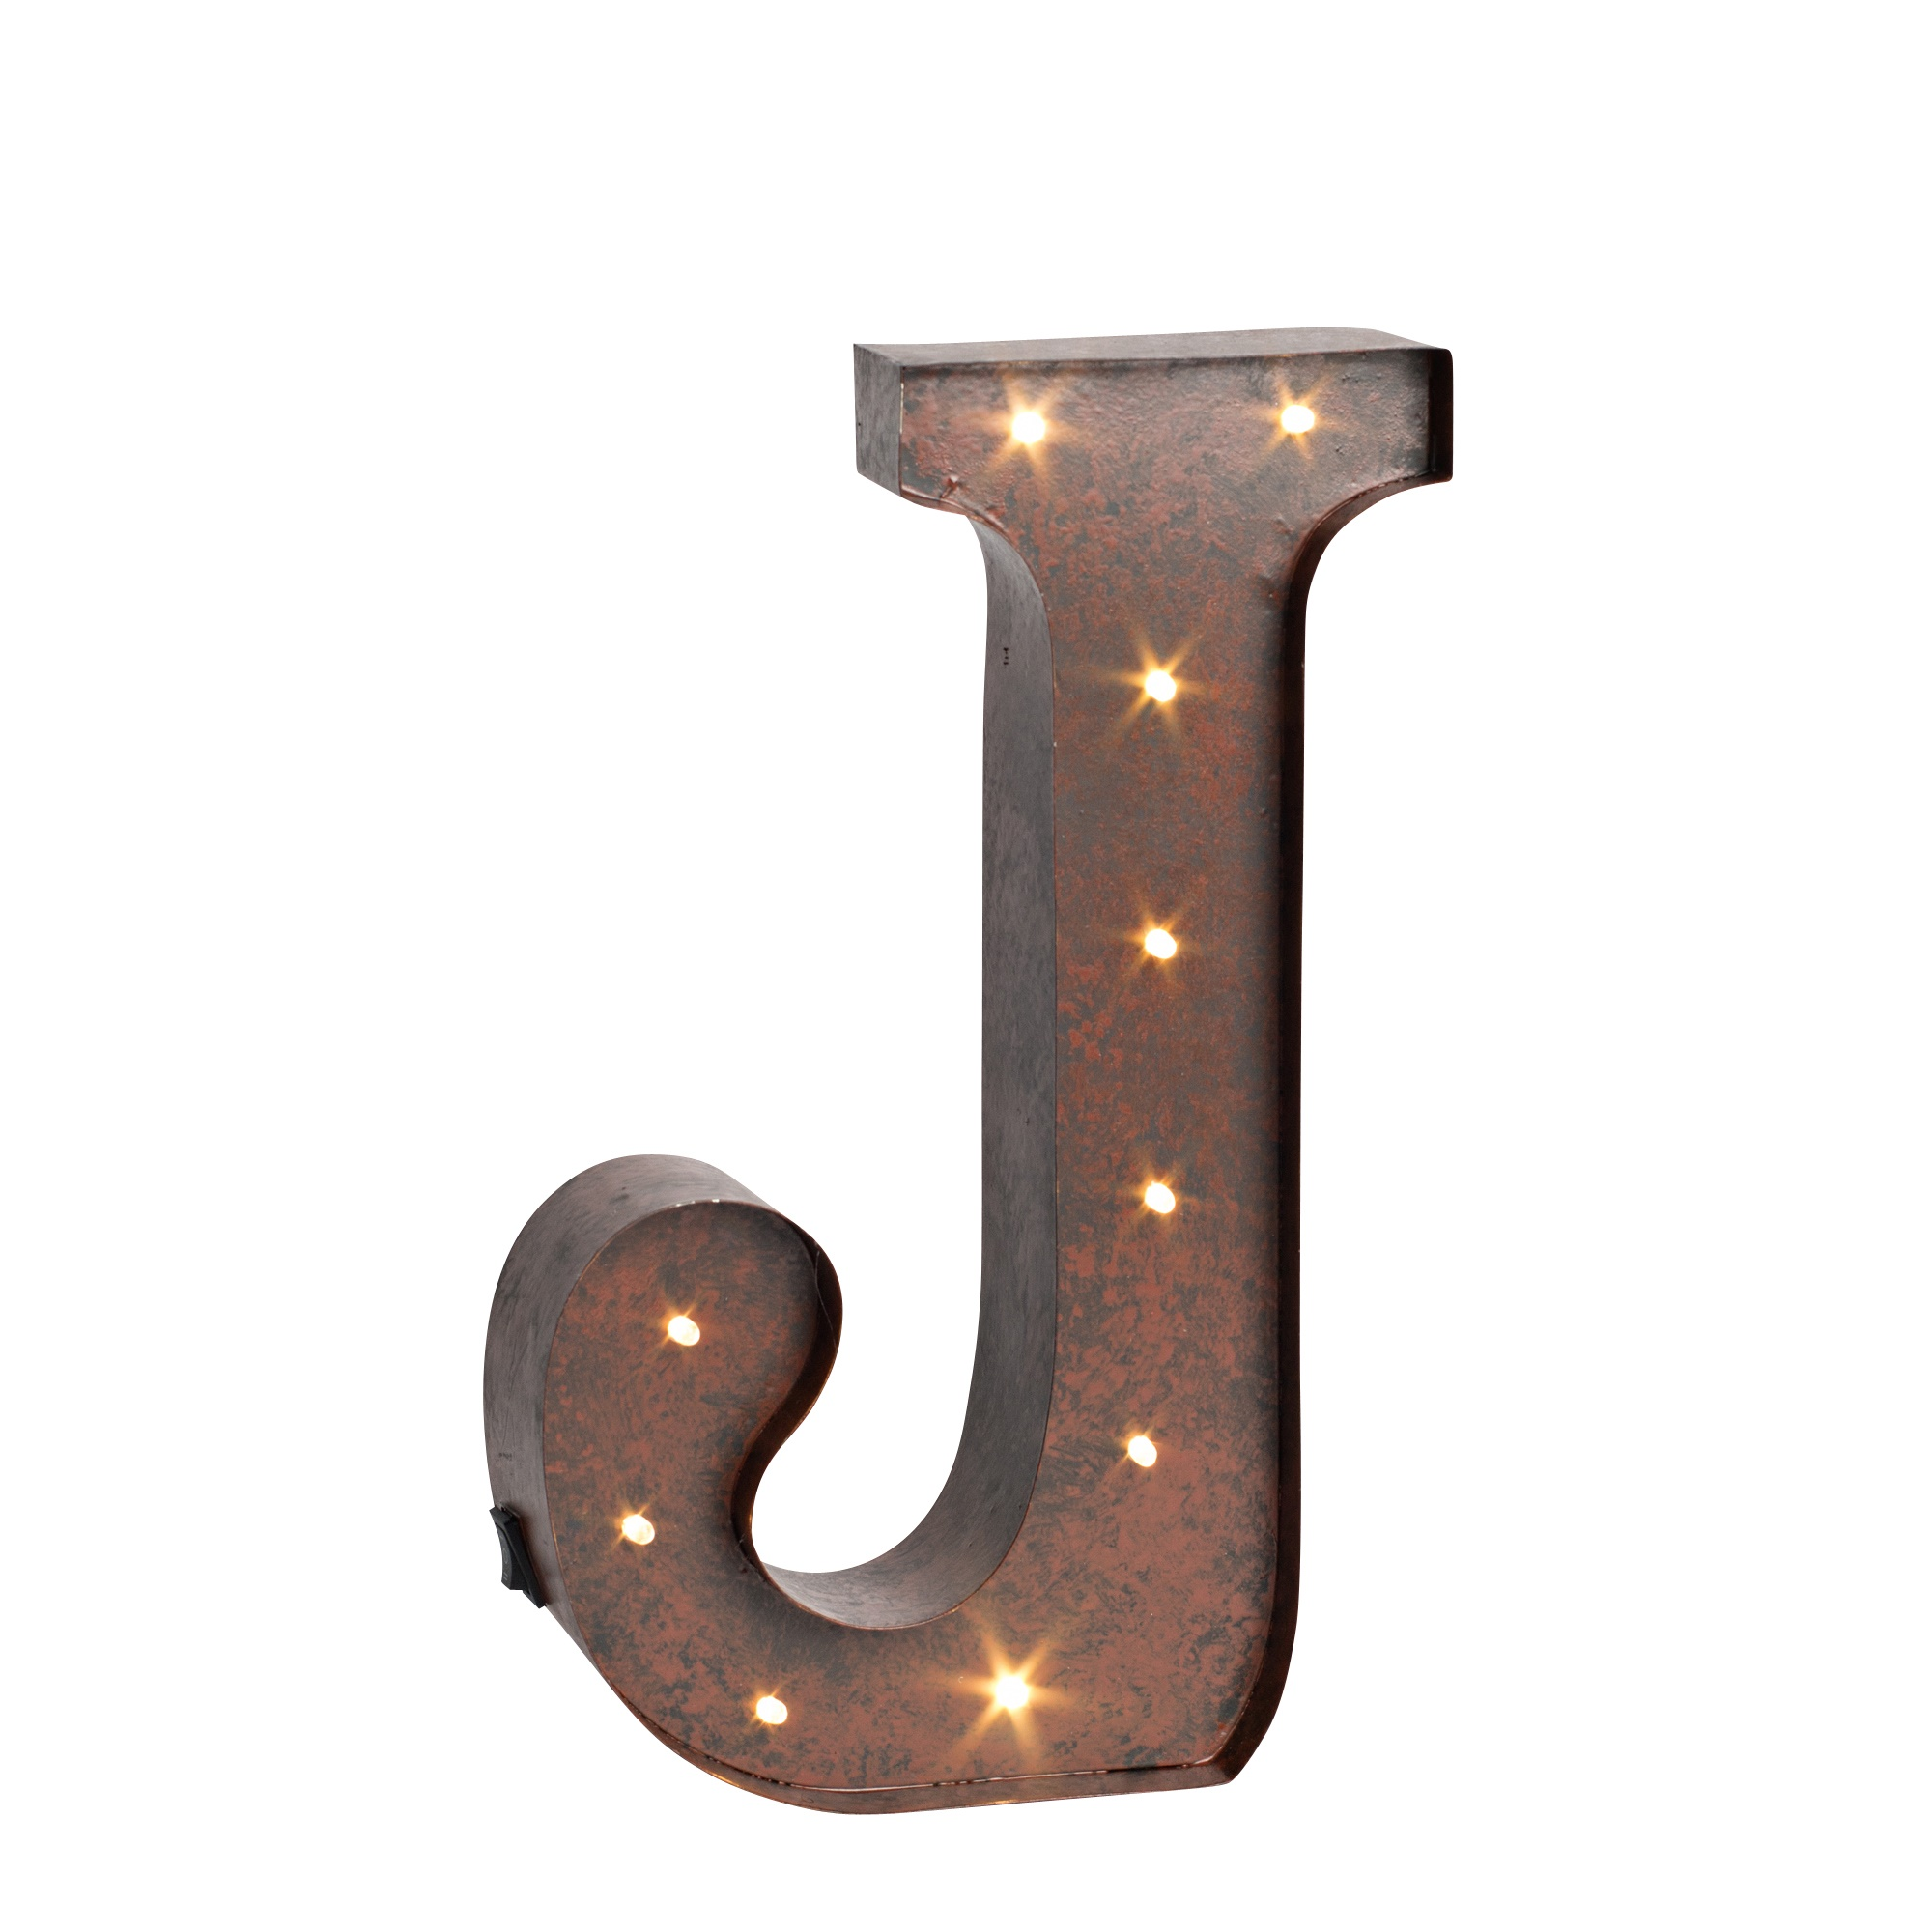 Large Metal Letter J Letter Lights